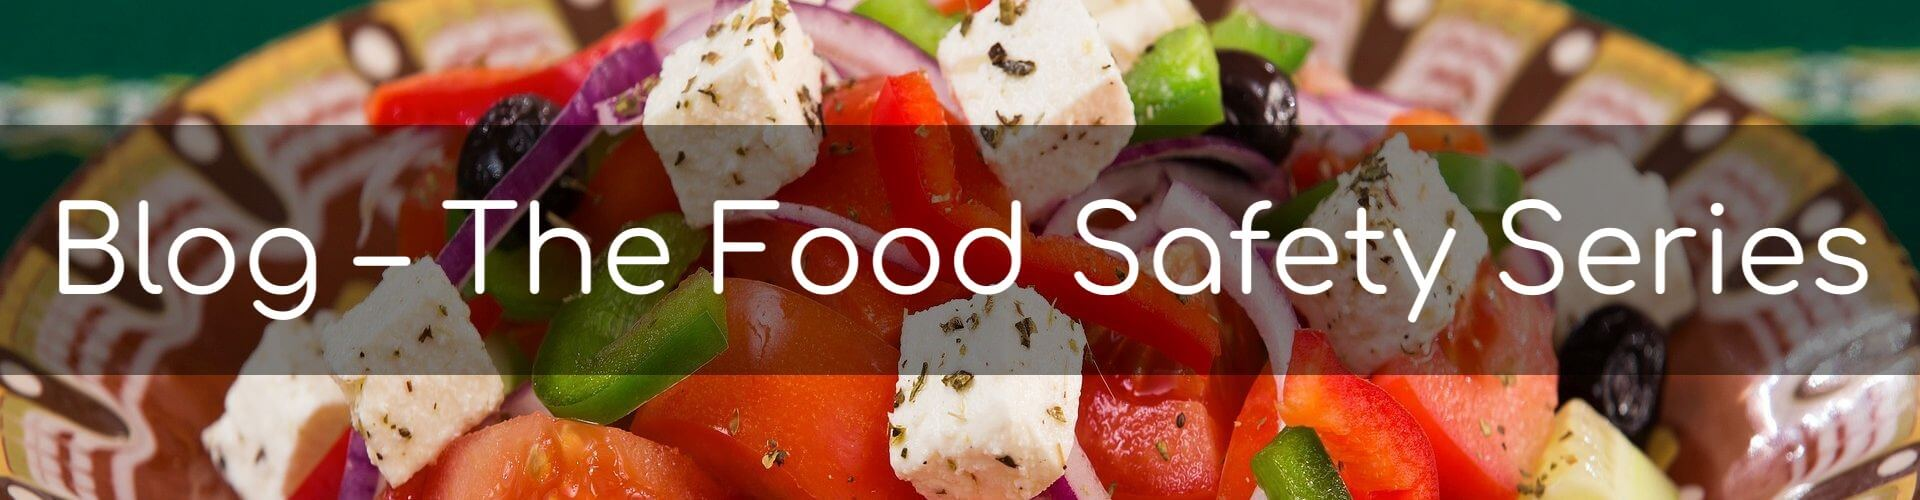 Blog - The Food Safety Series - Title image